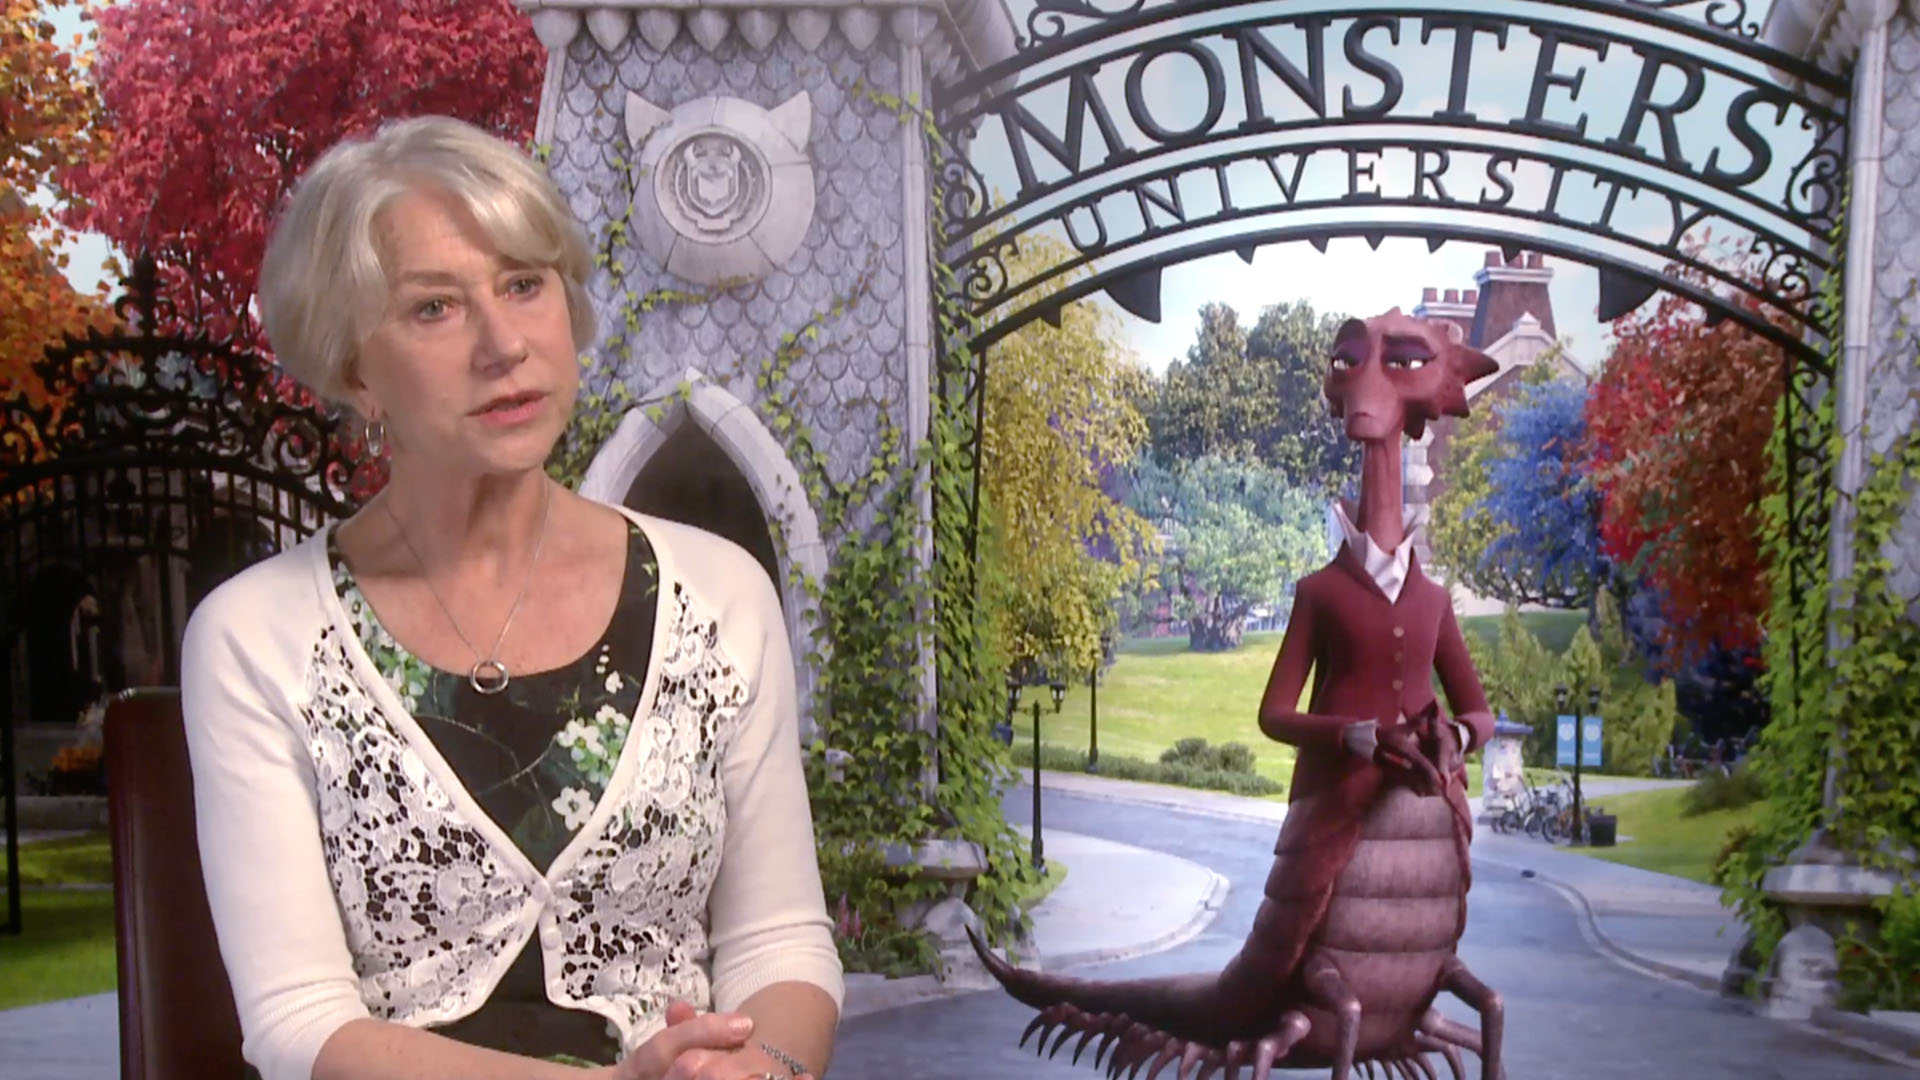 Helen Mirren talking about Monsters University